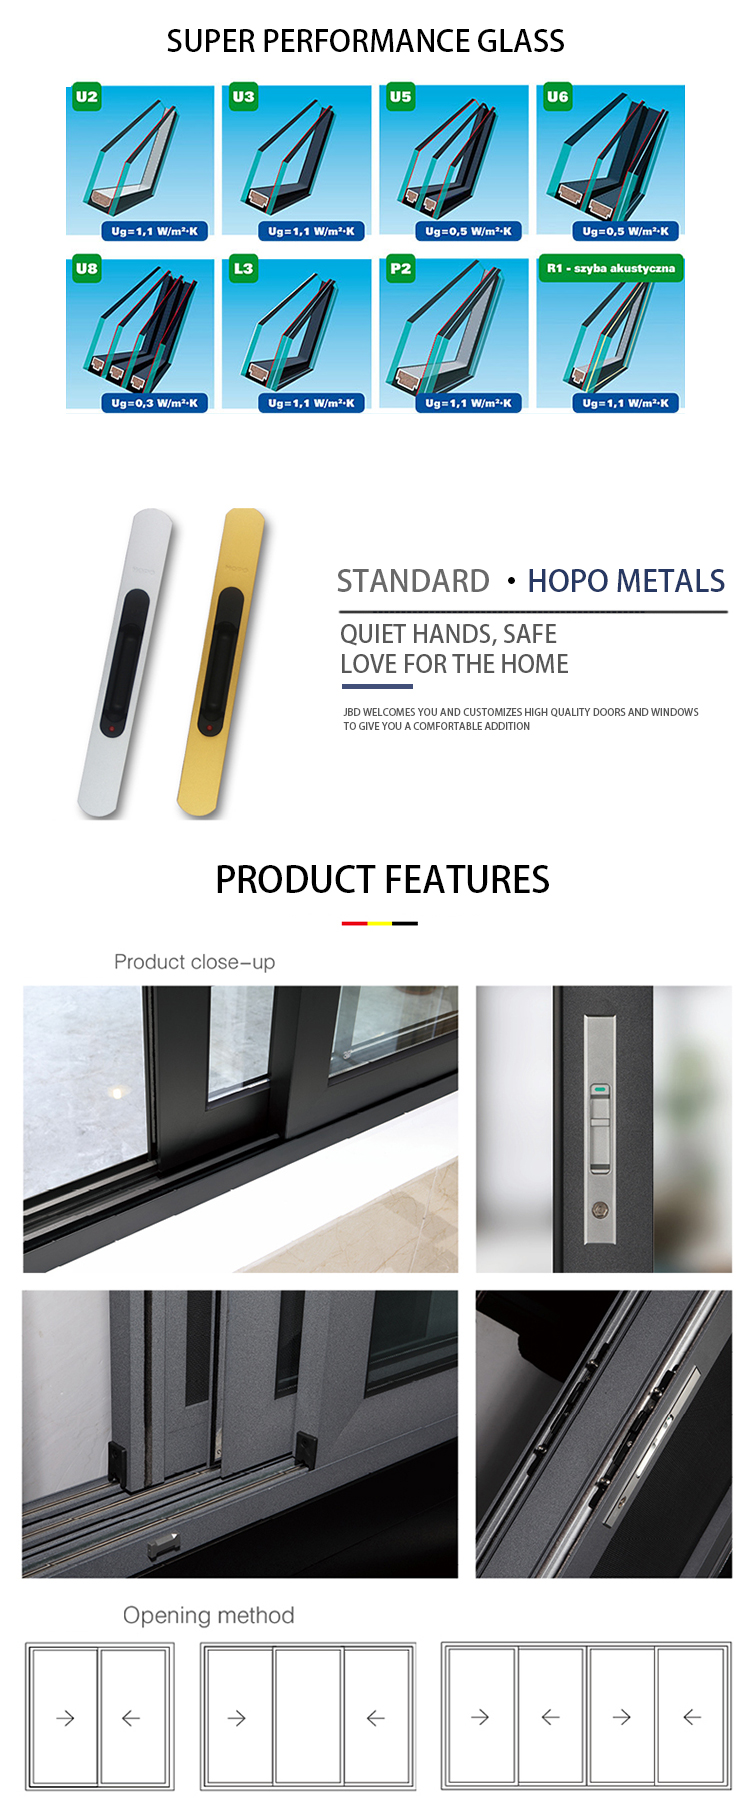 Powder Coated Finished Aluminum Reflective Glass Sliding Windows With Stainless Steel Fly Screen